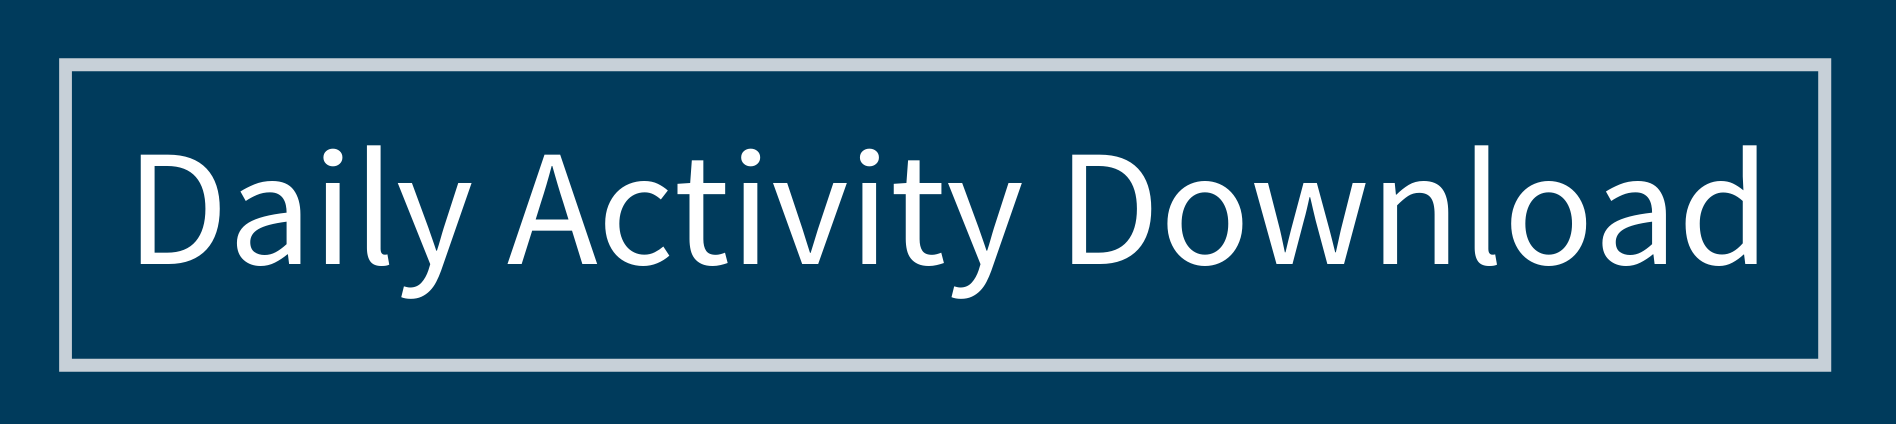 daily-activity-download.png